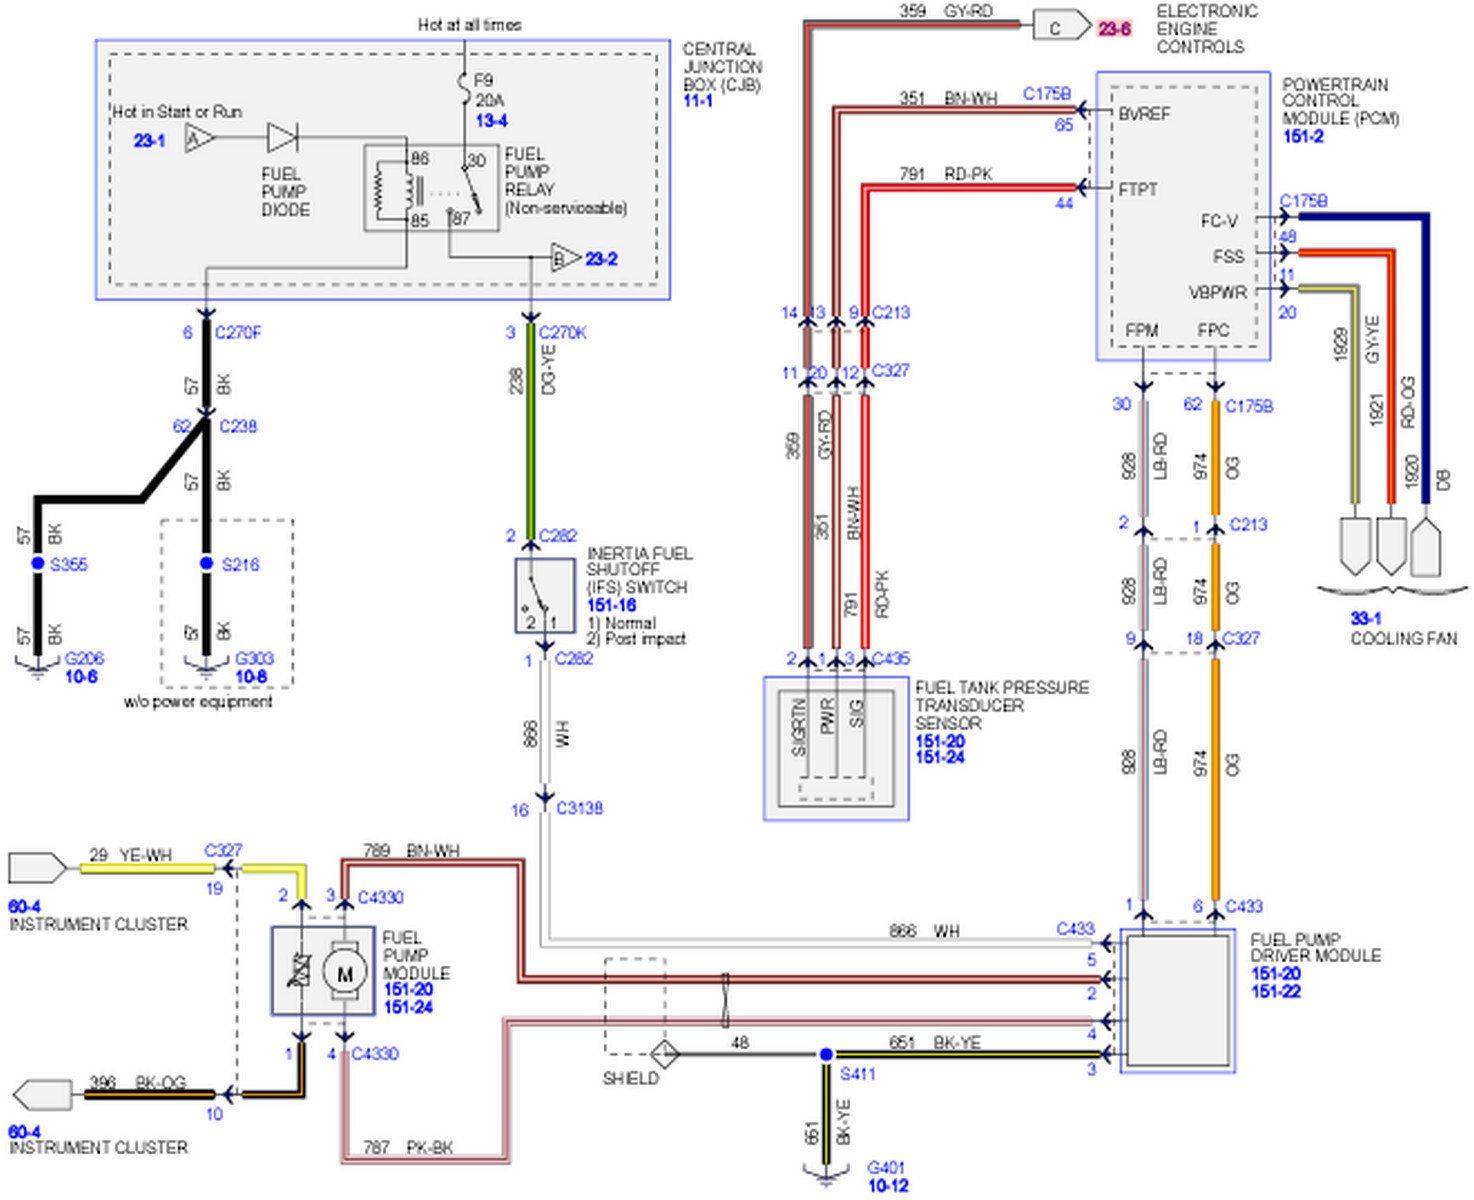 Ford Fuel Pump Wiring Diagram Within | Ford ranger, Ford, DiagramPinterest